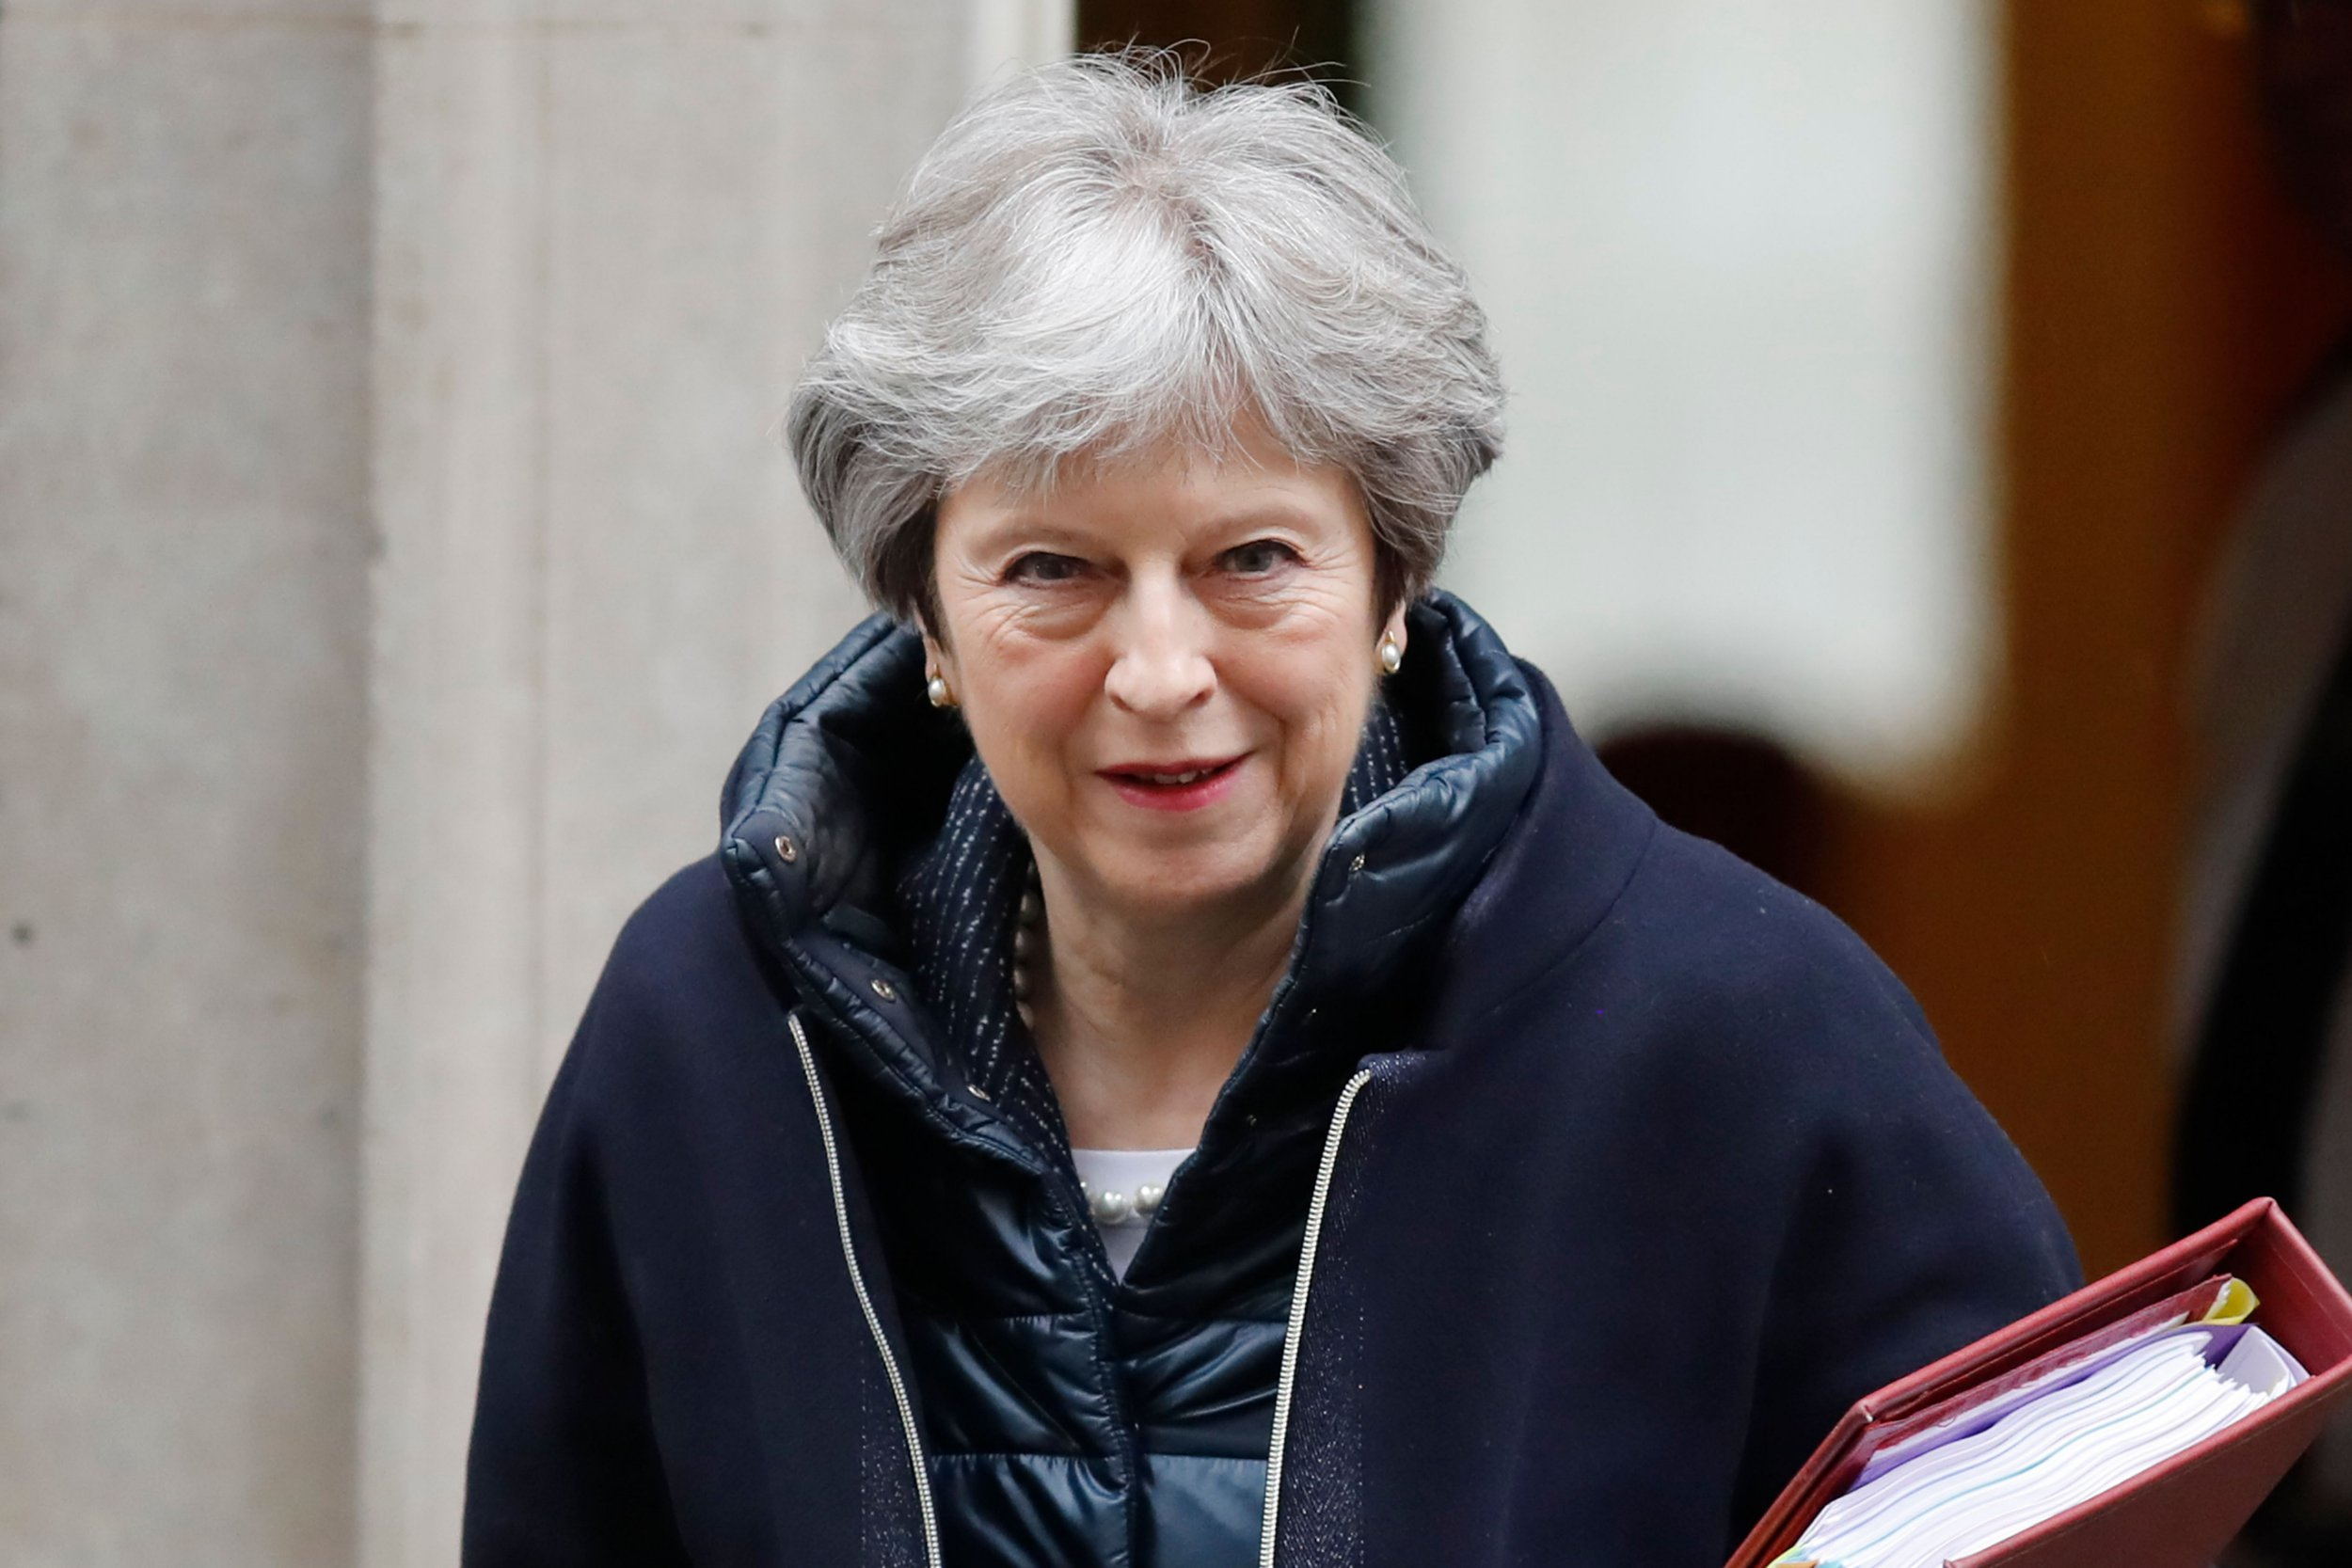 Britain's Prime Minister Theresa May leaves 10 Downing Street in London on March 28, 2018 ahead of the weekly Prime Ministers Questions session in the House of Commons. / AFP PHOTO / Tolga AKMENTOLGA AKMEN/AFP/Getty Images